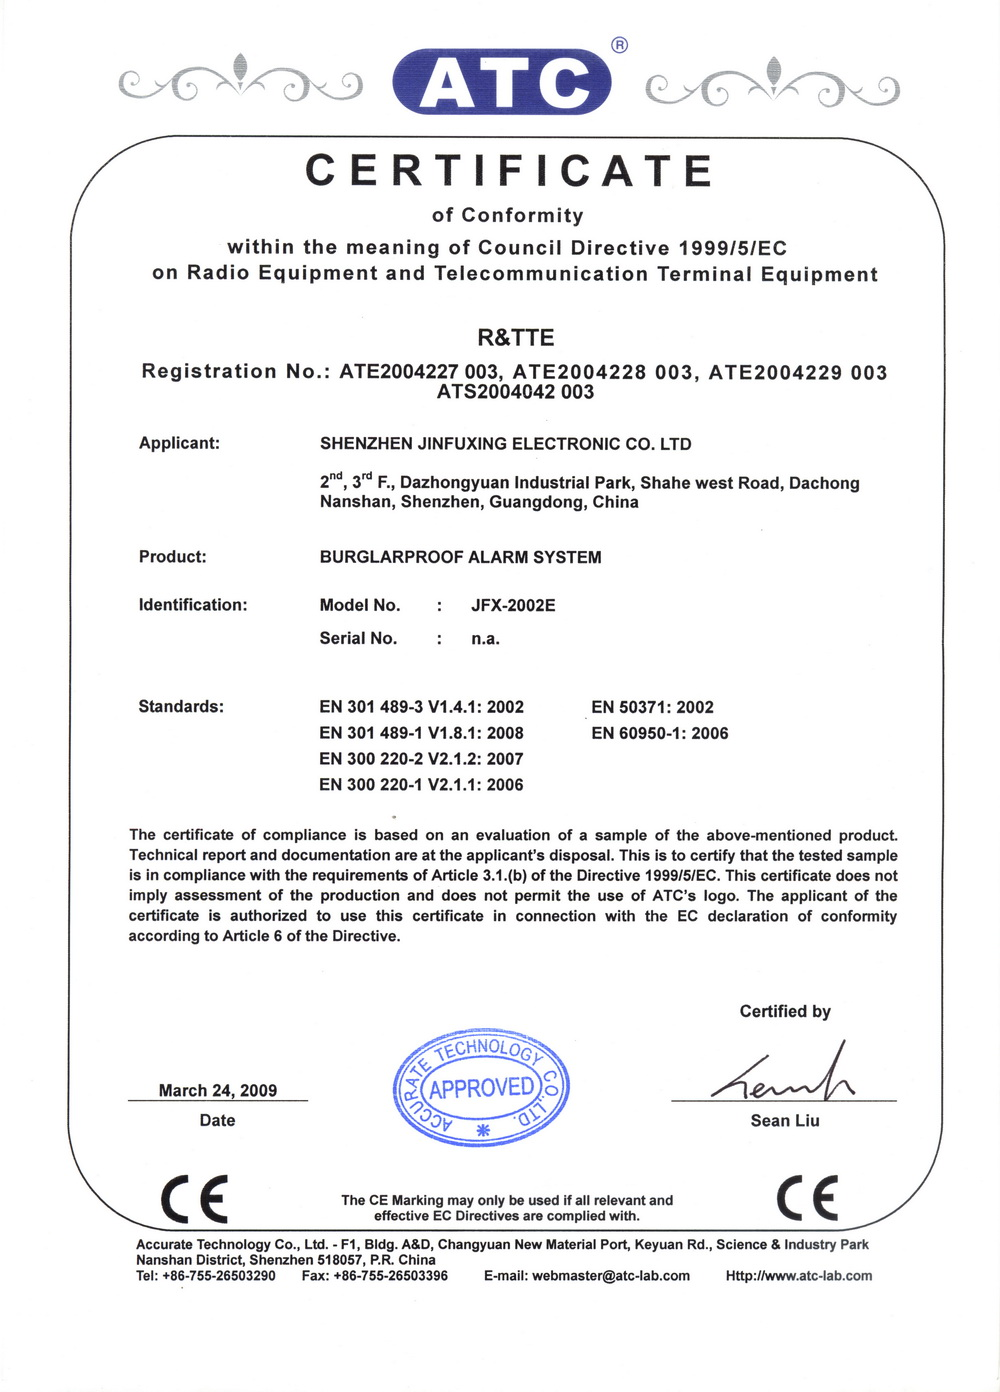 Shenzhen Security Group Qualification Certificate